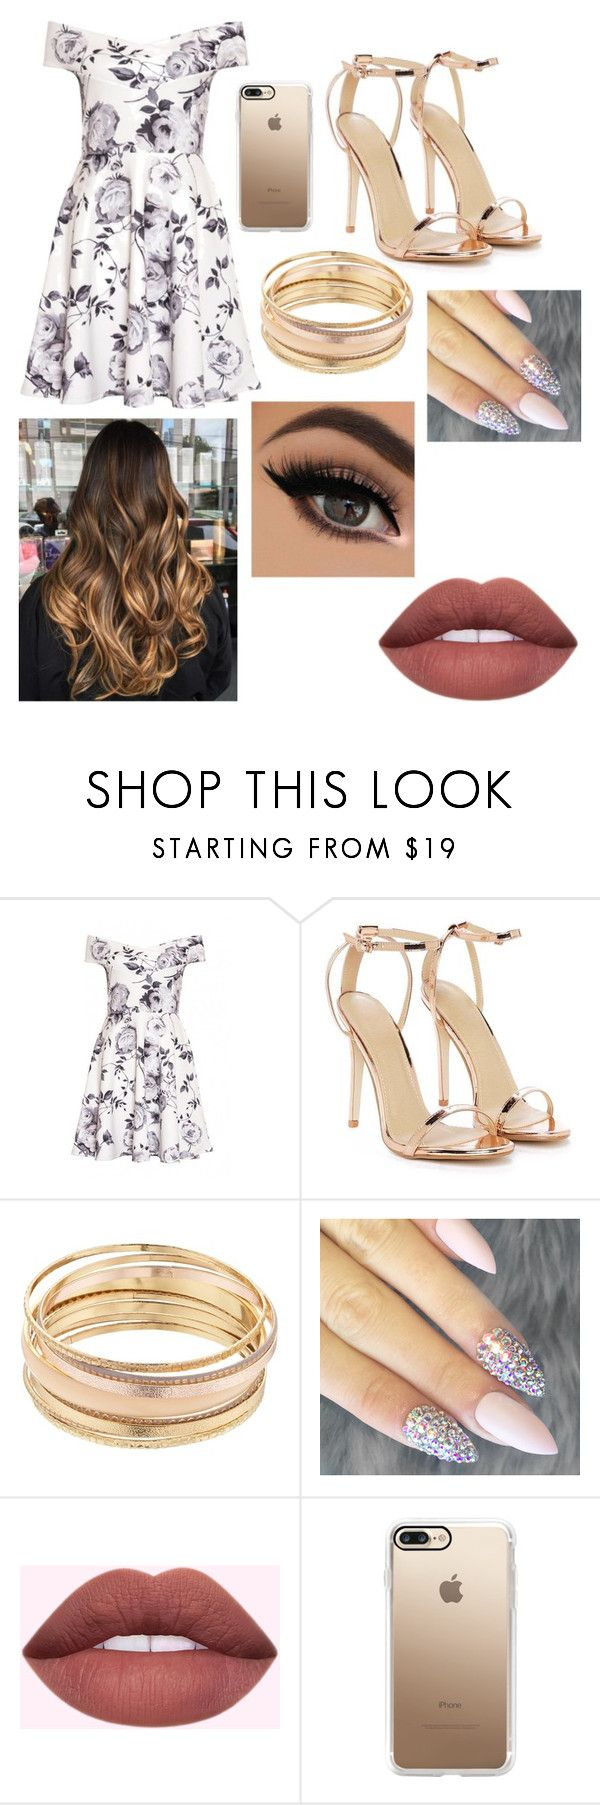 """Classy look"" by daphne-gramling ❤ liked on Polyvore featuring Nasty Gal, Mudd and Casetify"